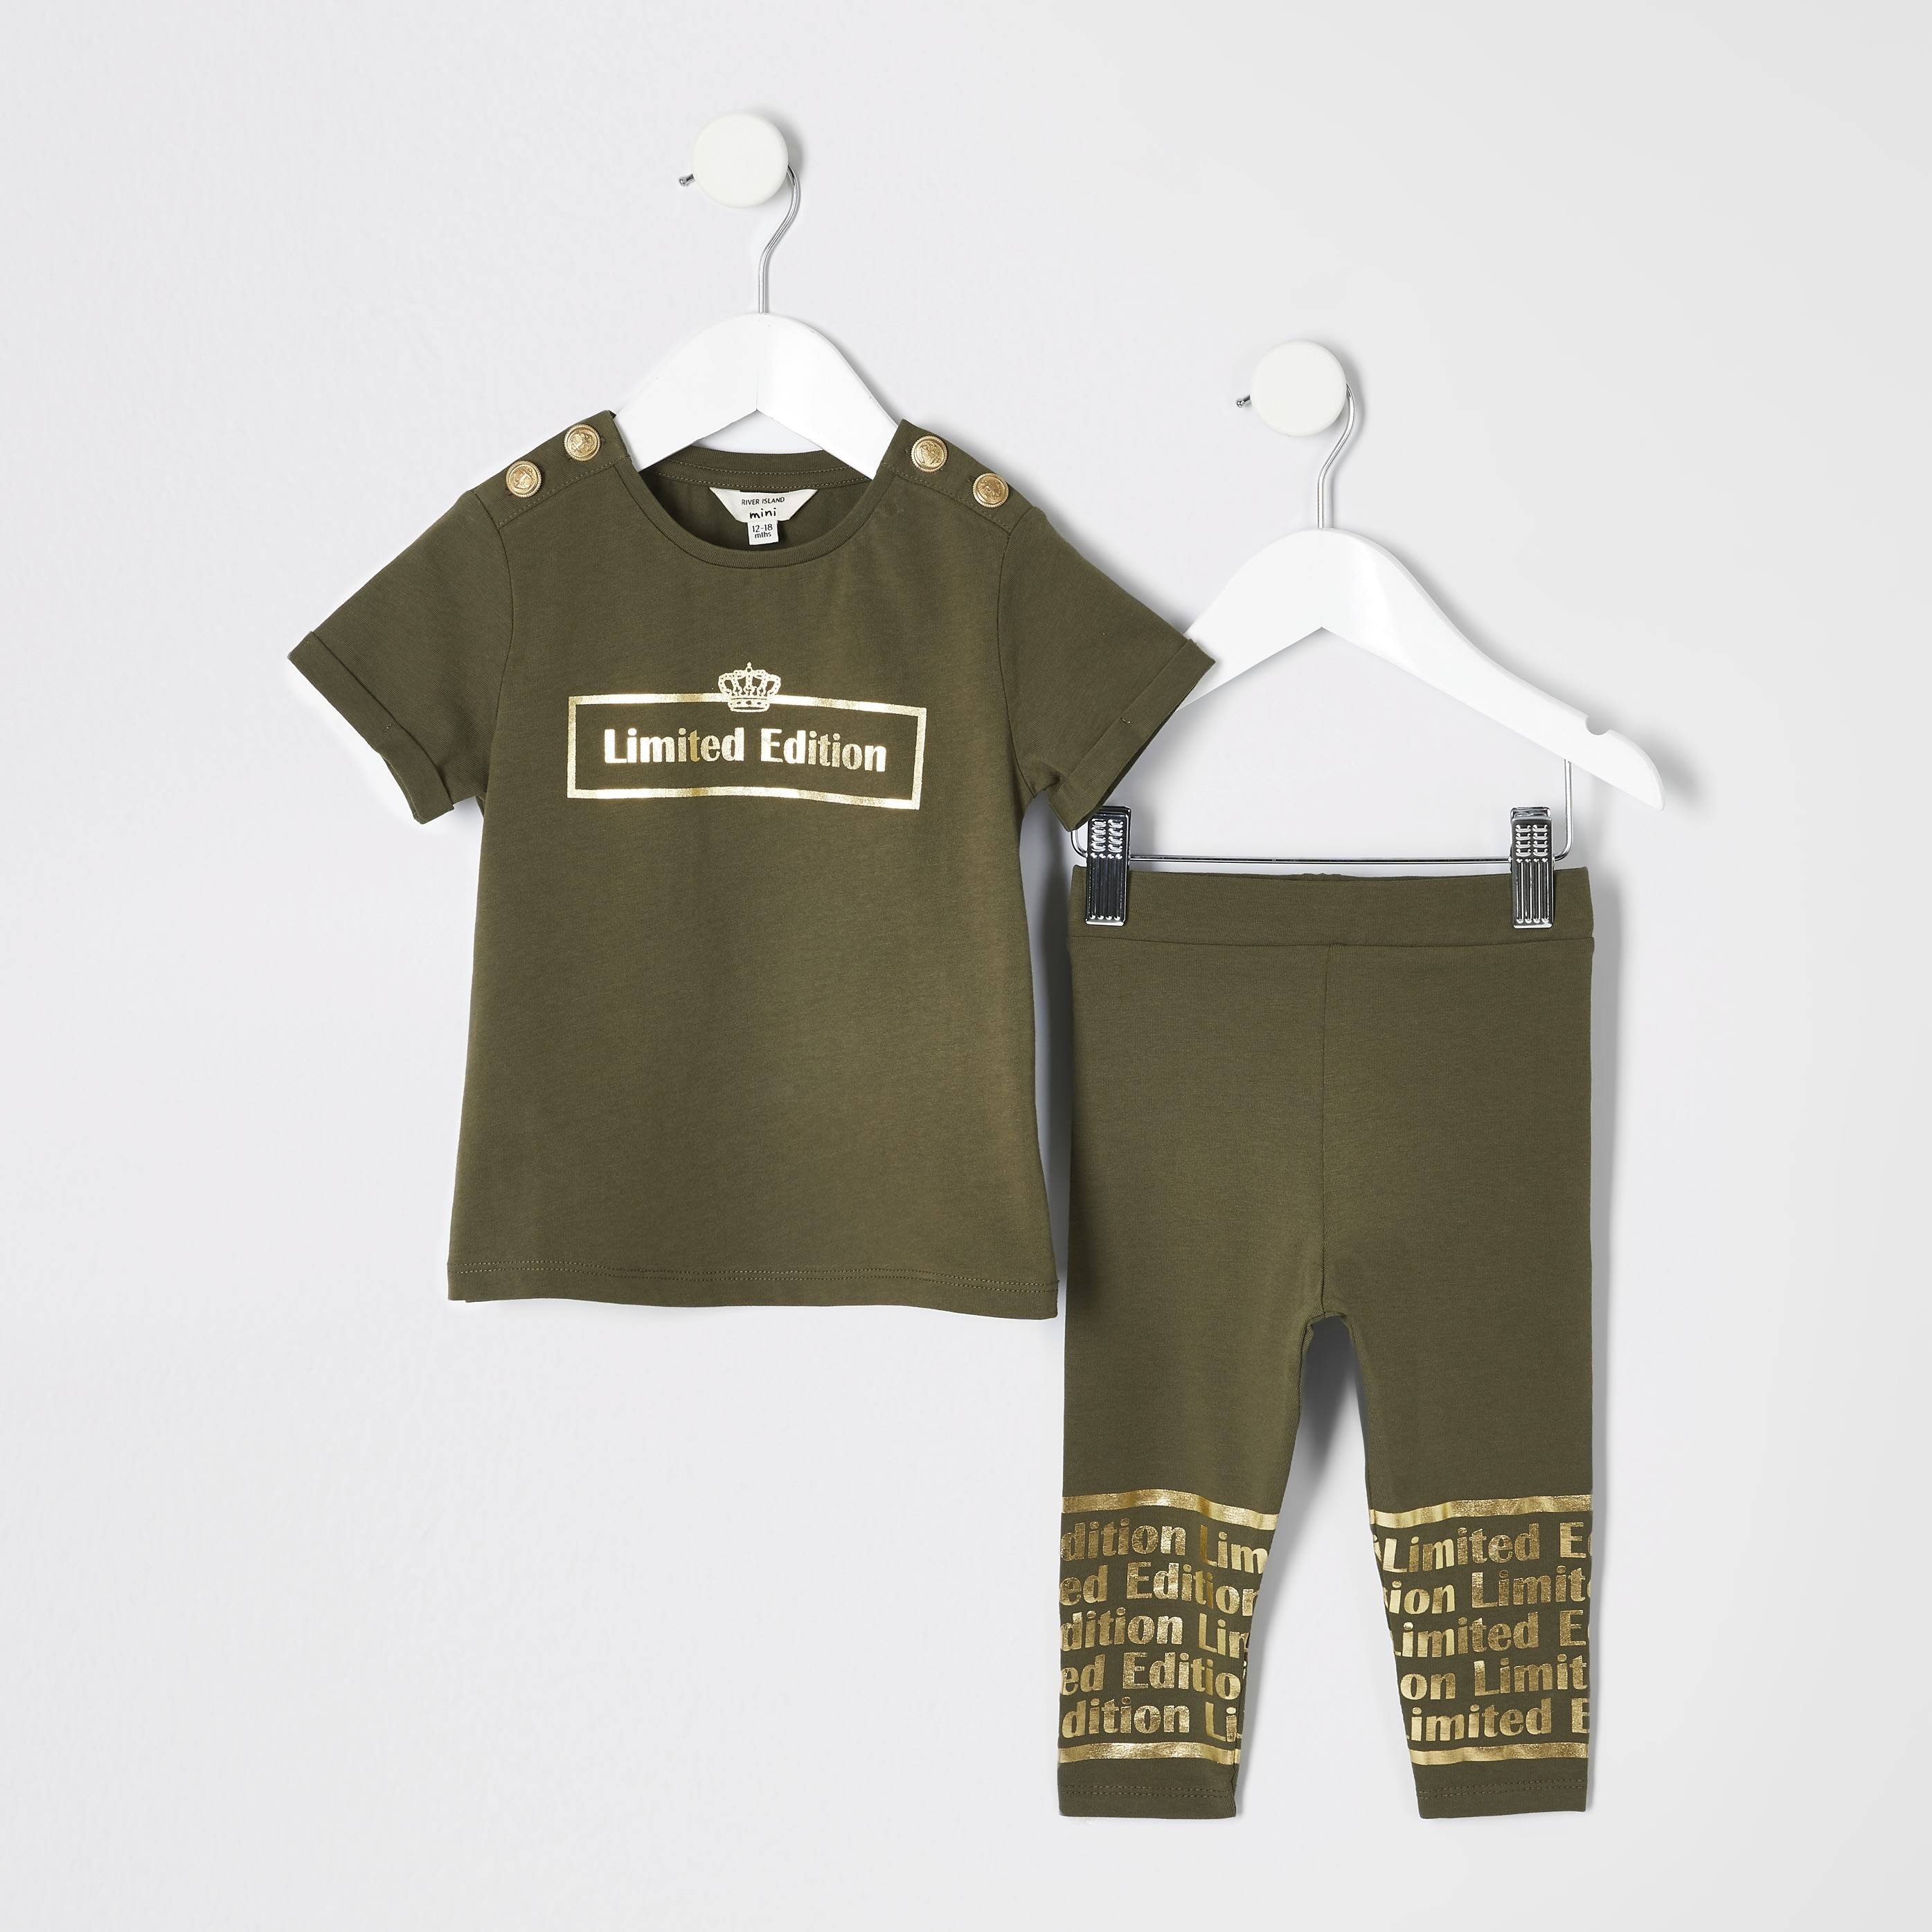 River Island Baby Girls 'limited edition' T-shirt outfit (4-5 Yrs)